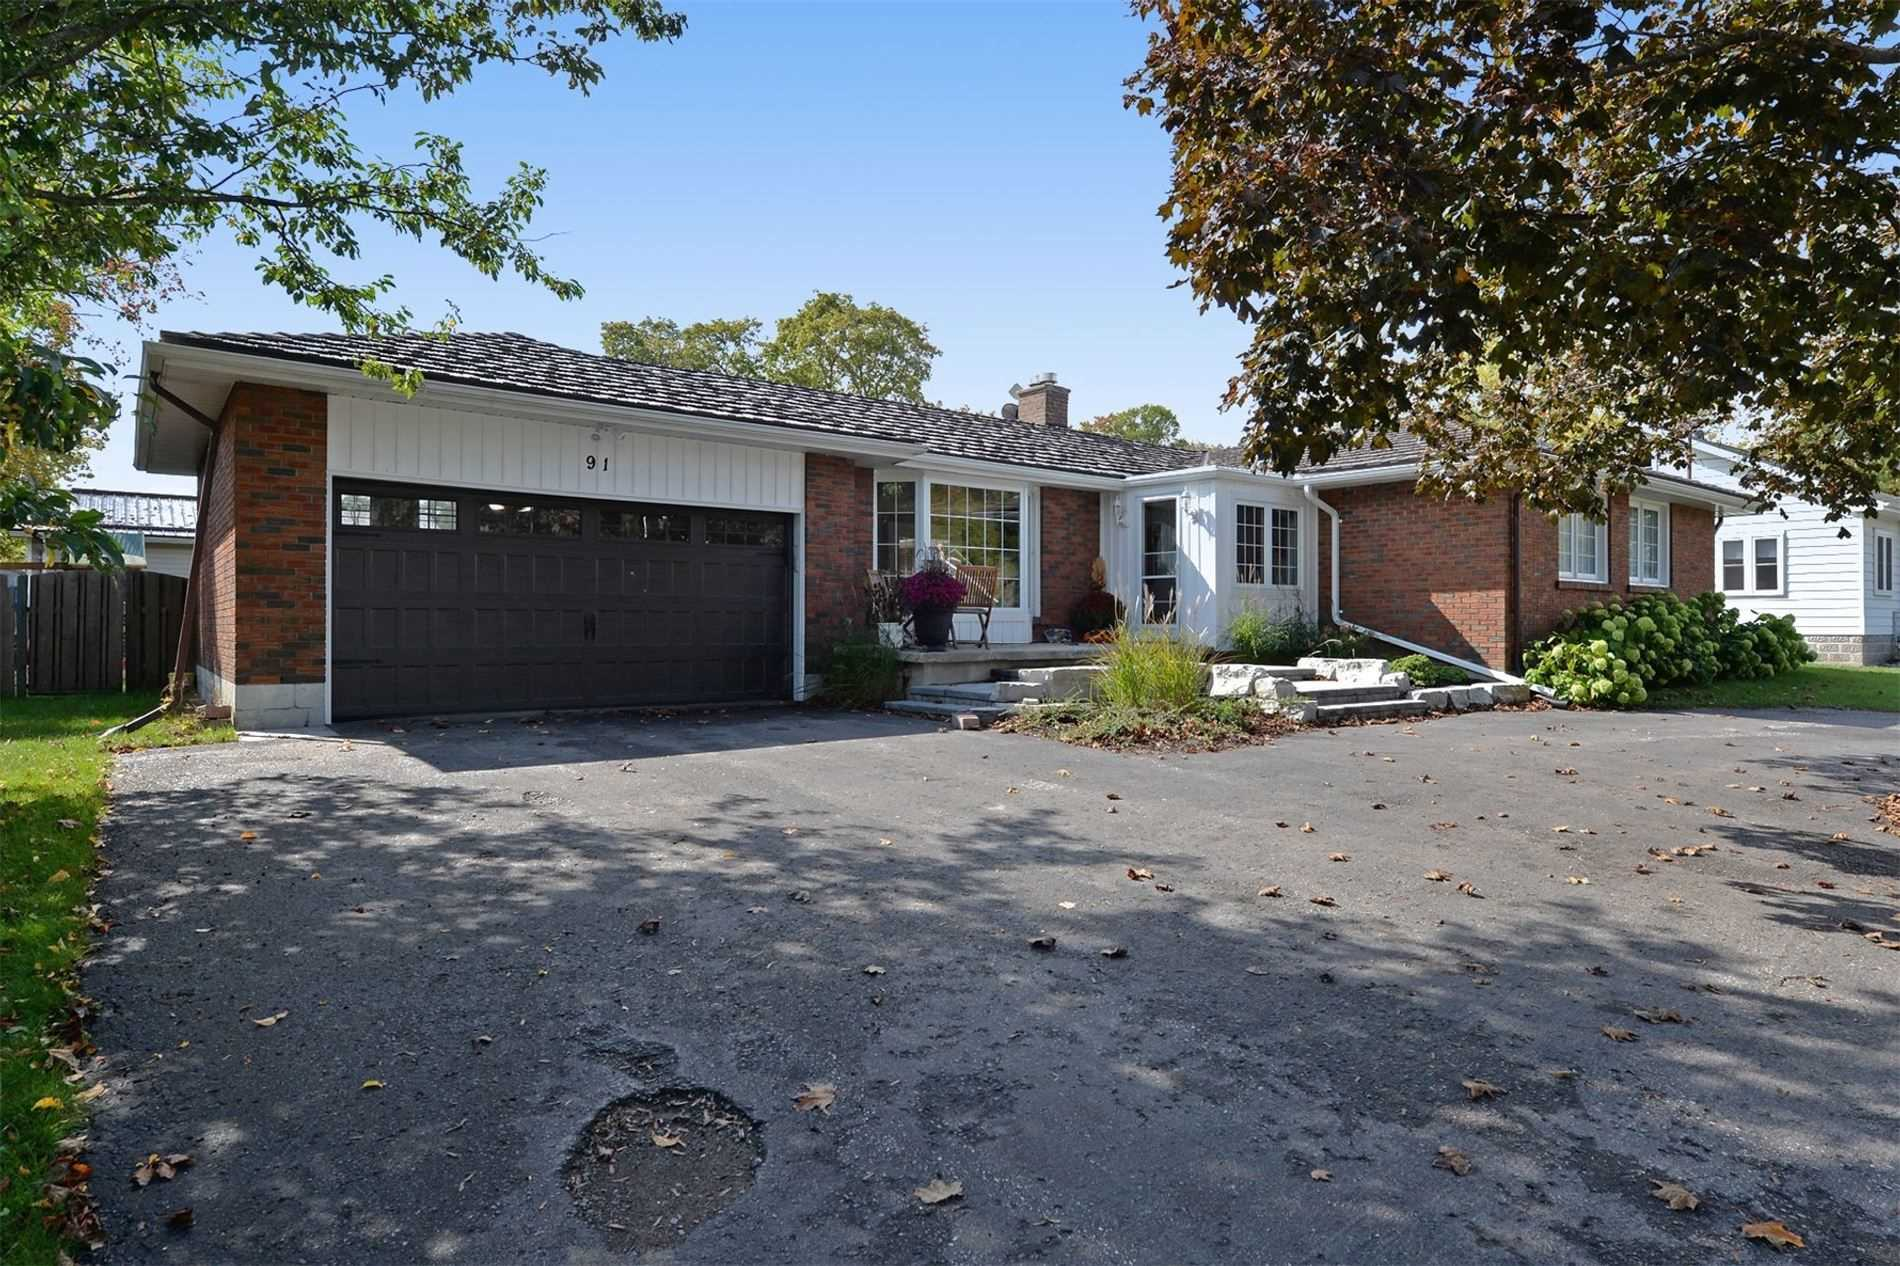 pictures of house for sale MLS: X4762184 located at 91 Queen St, Kawartha Lakes K0M1N0